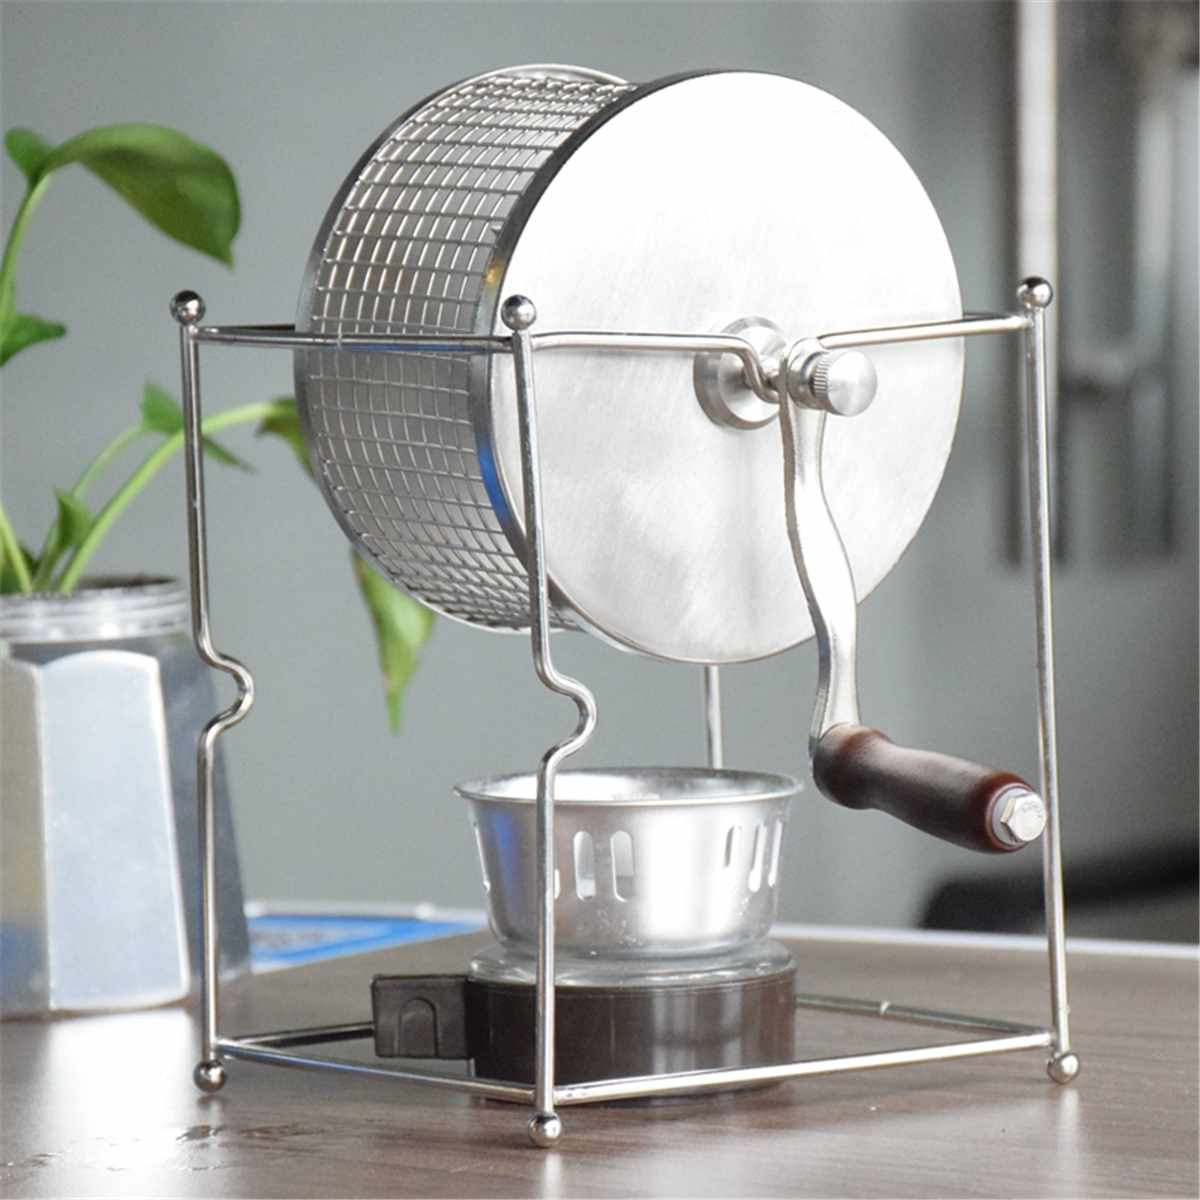 Barista Stainless Steel Coffee Roaster Manual Coffee Beans Baking Machine Roller Kitchen Accessories Appliances Coffee Tools